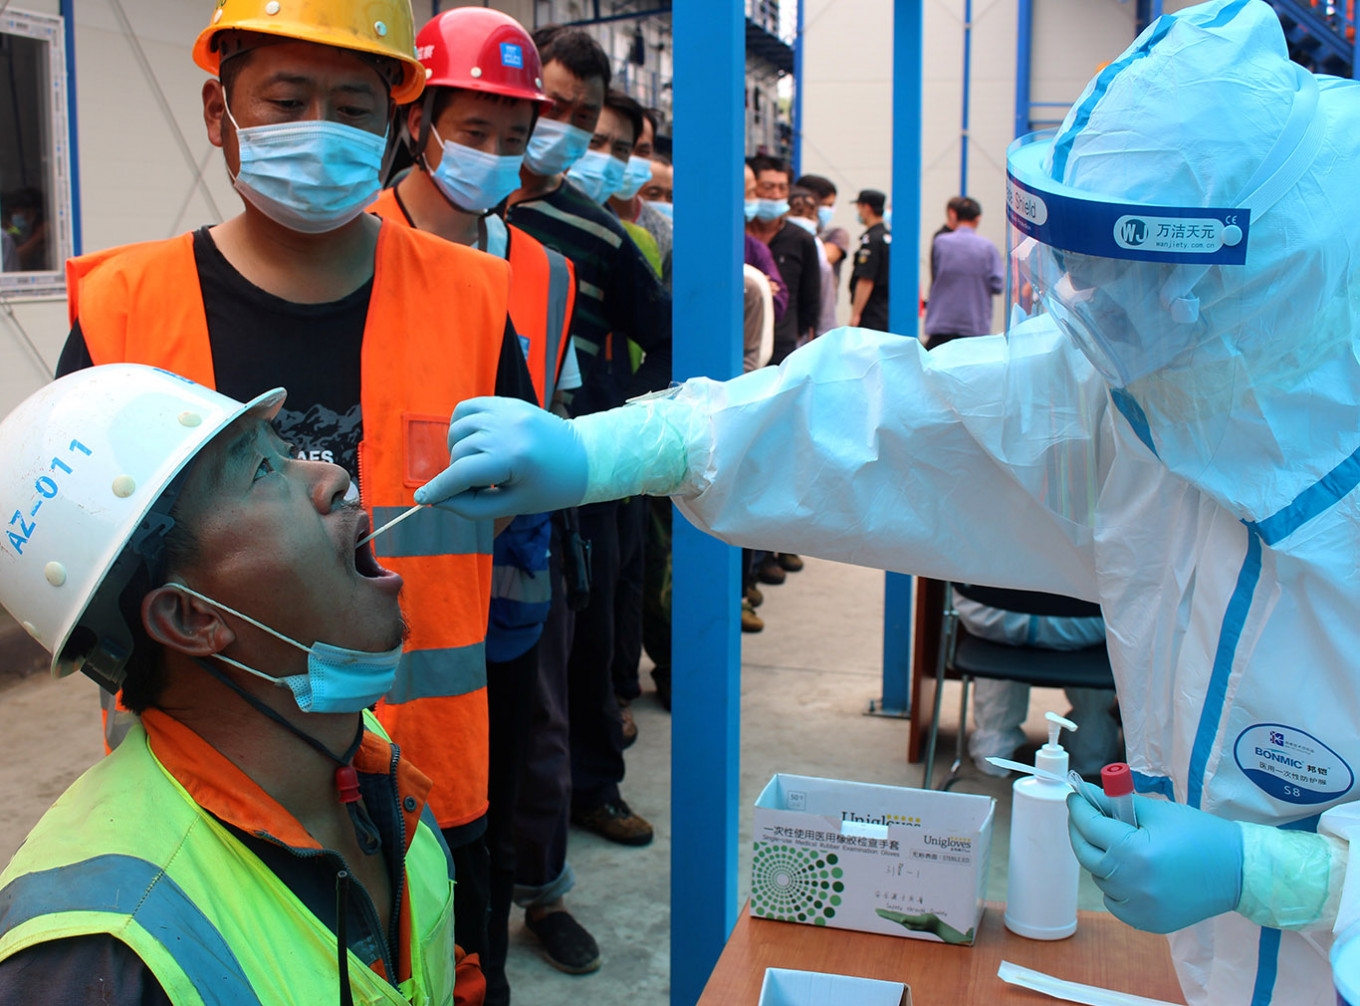 Beijing ramps up testing capacity, reaching a third of city's population so far